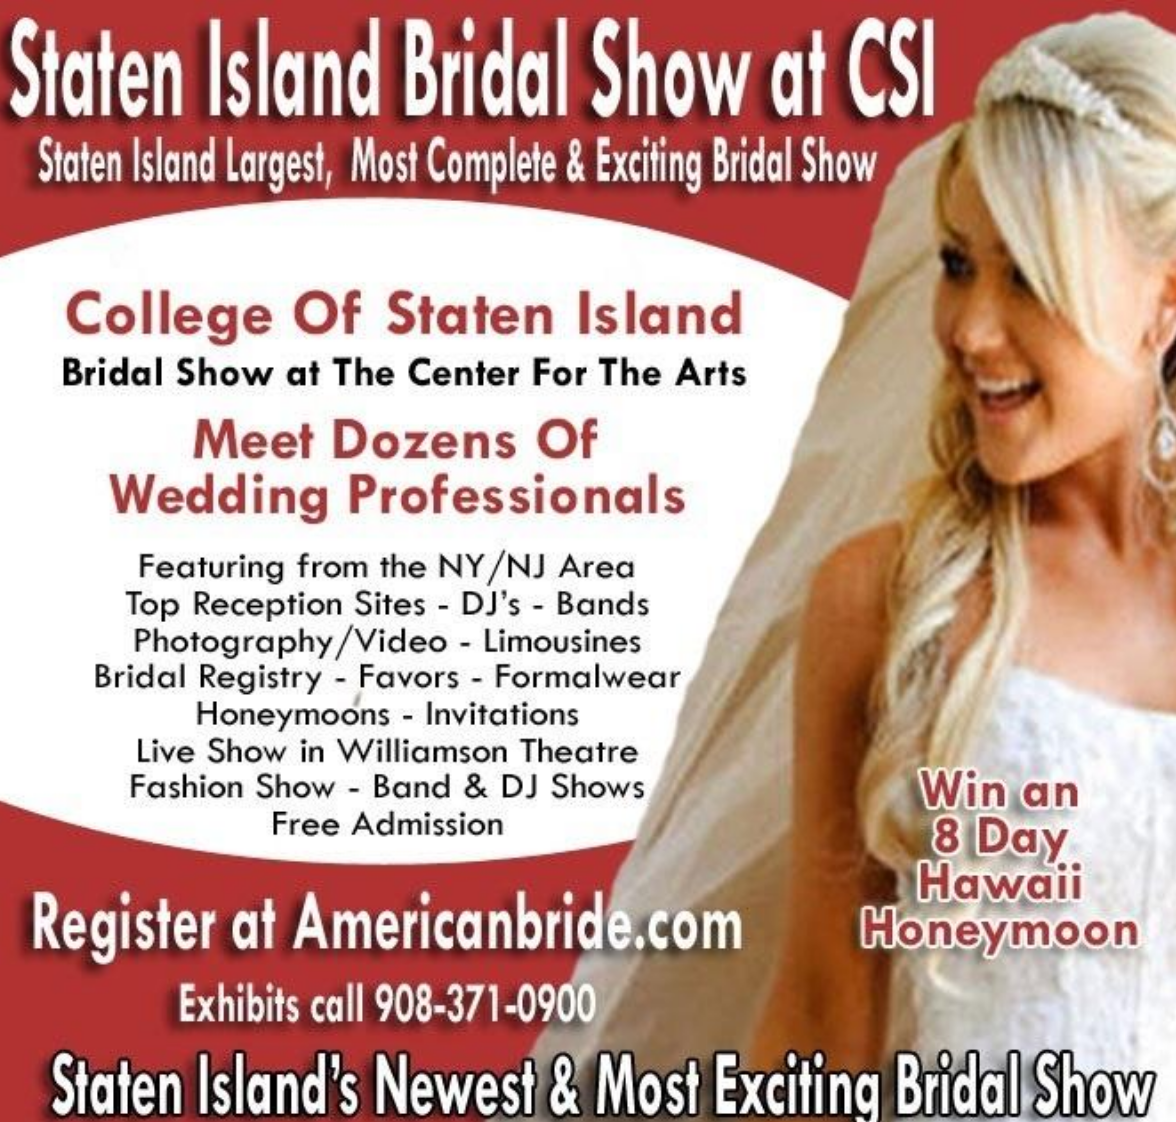 Staten Island Bridal Show at CSI